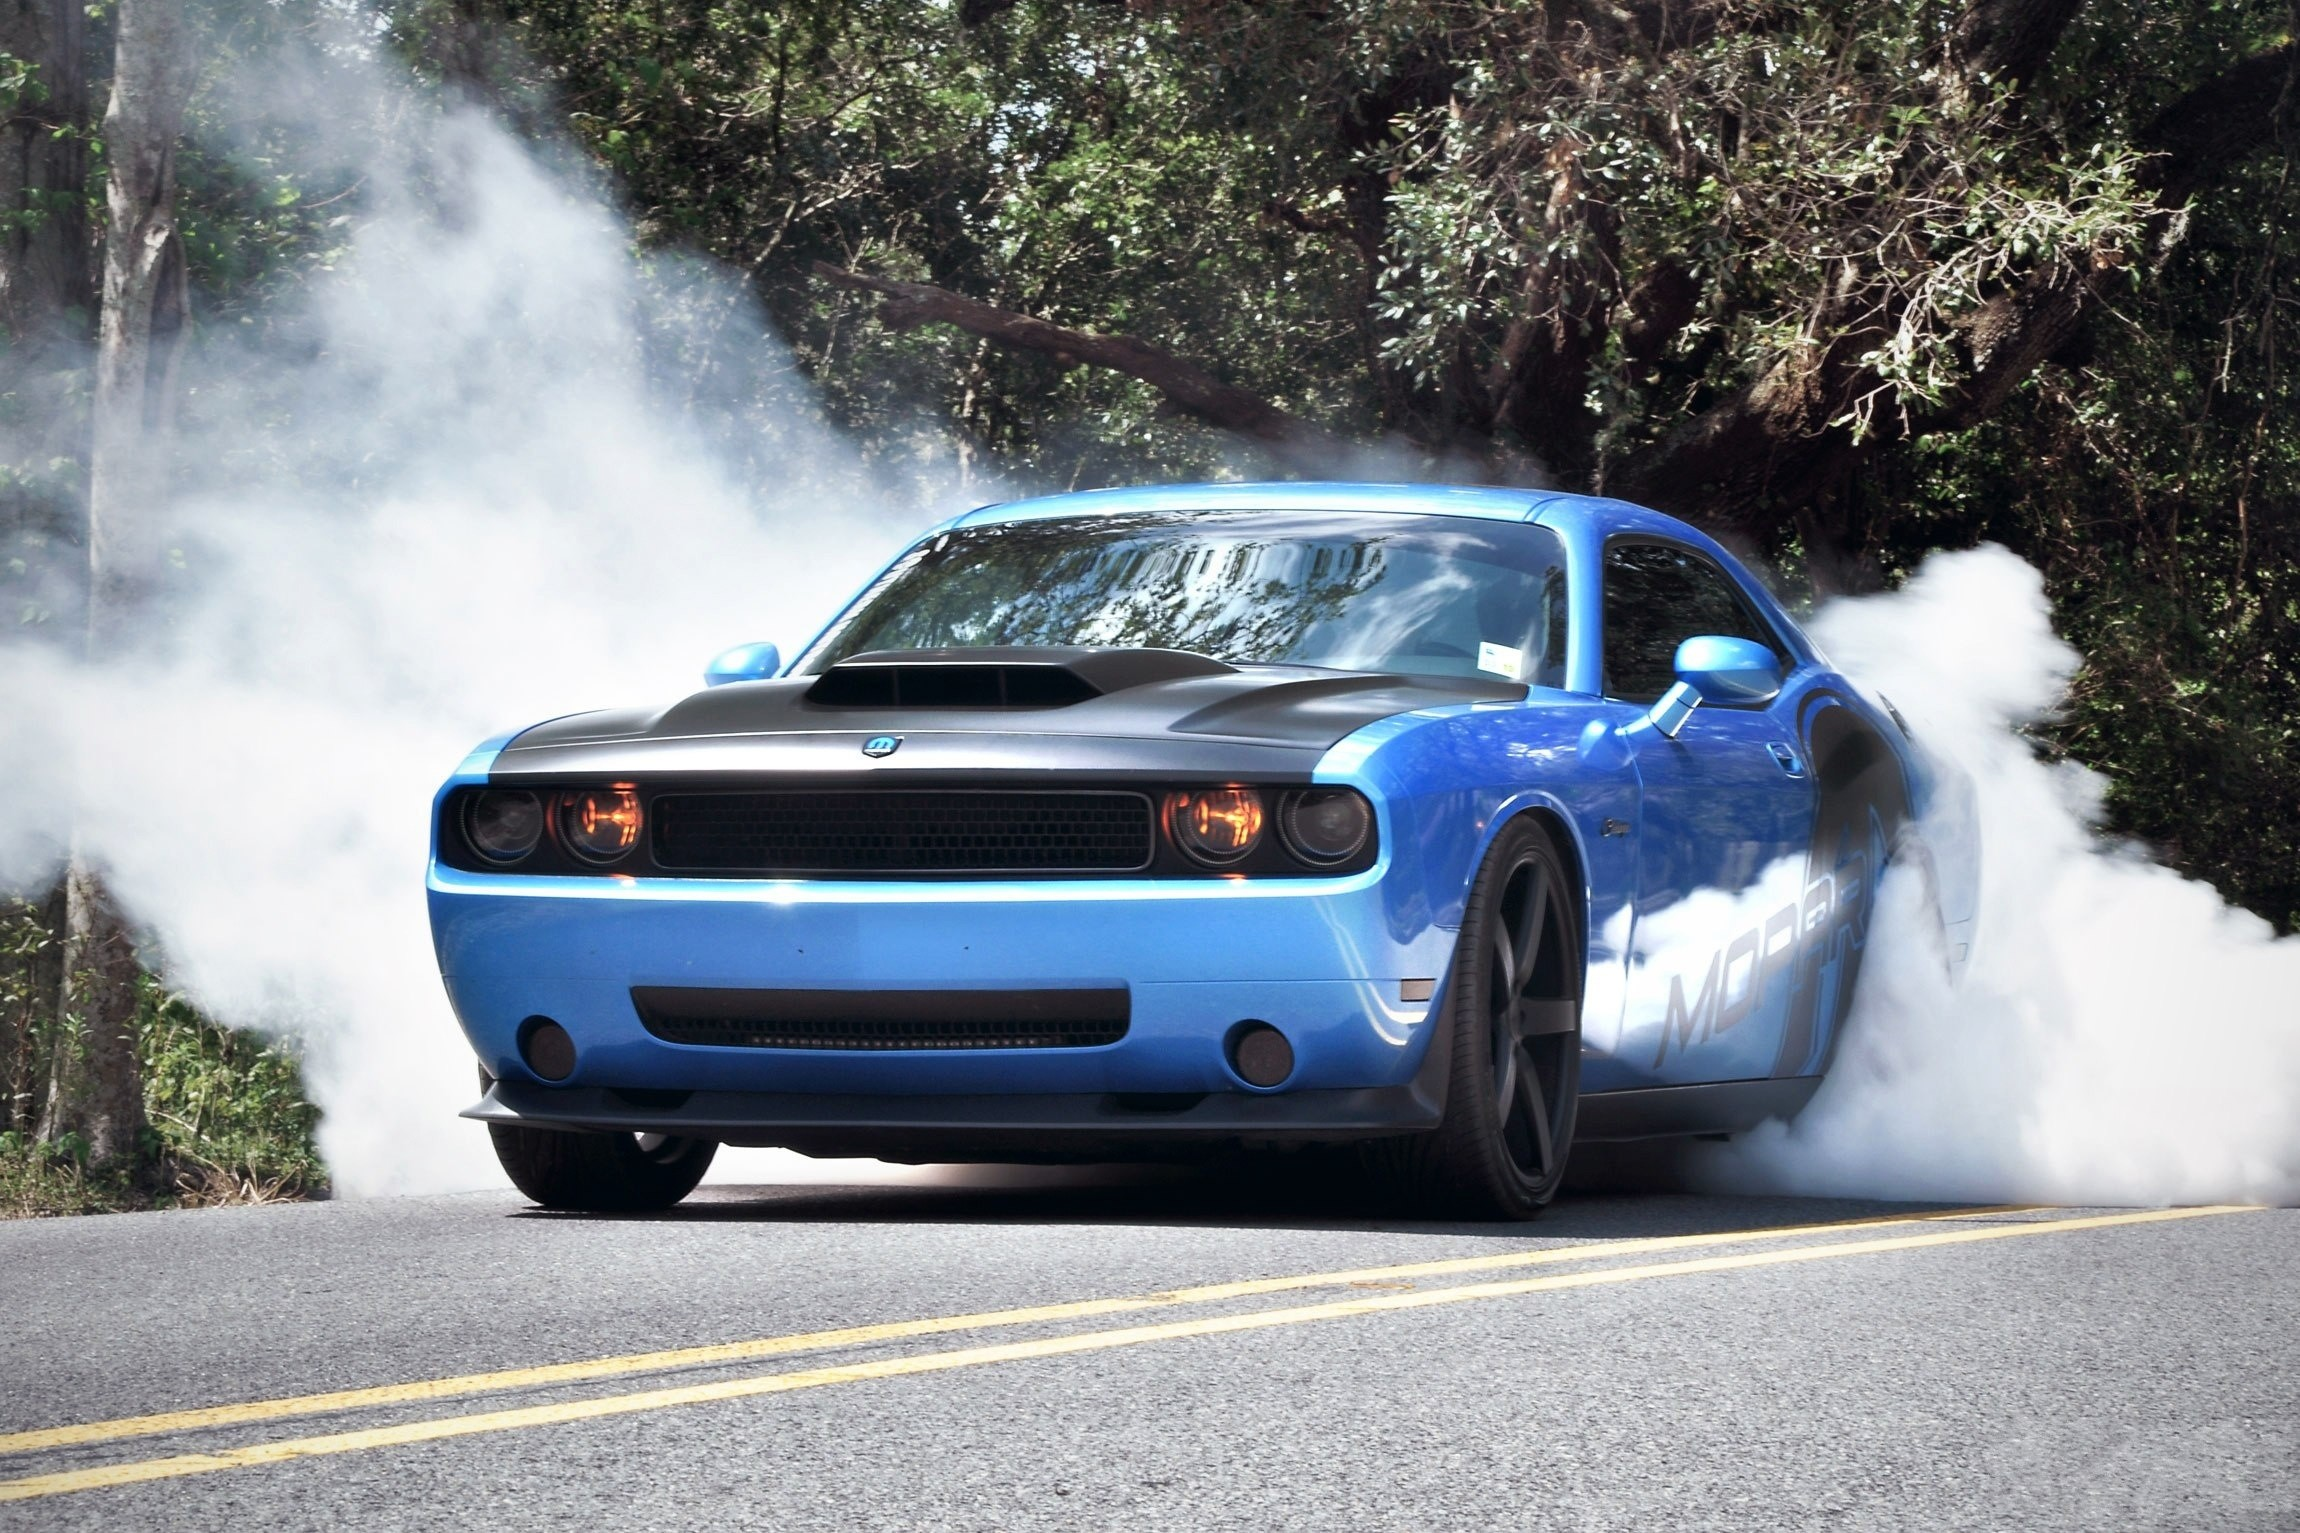 http://getwallpapers.com/wallpaper/full/1/4/e/939218-muscle-cars-wallpapers-high-resolution-2300x1533-for-android-40.jpg Muscle Cars Wallpapers High Resolution